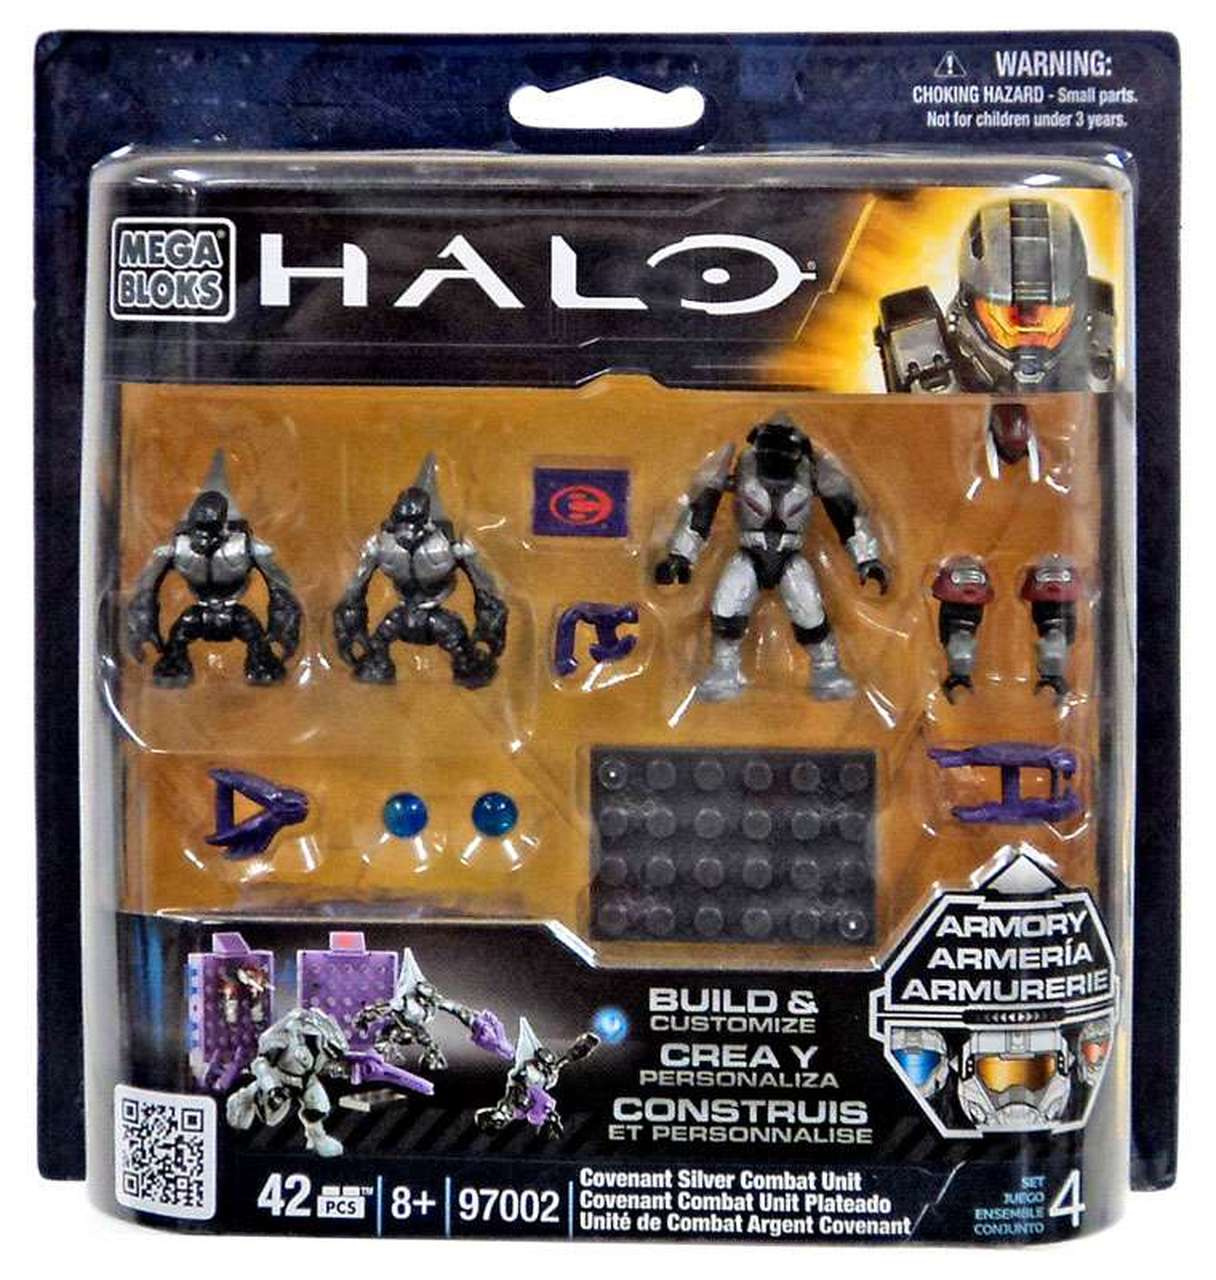 Halo Mega Bloks Covenant Silver Combat Unit officially licensed Halo Mega Bloks product at B.A. Toys.